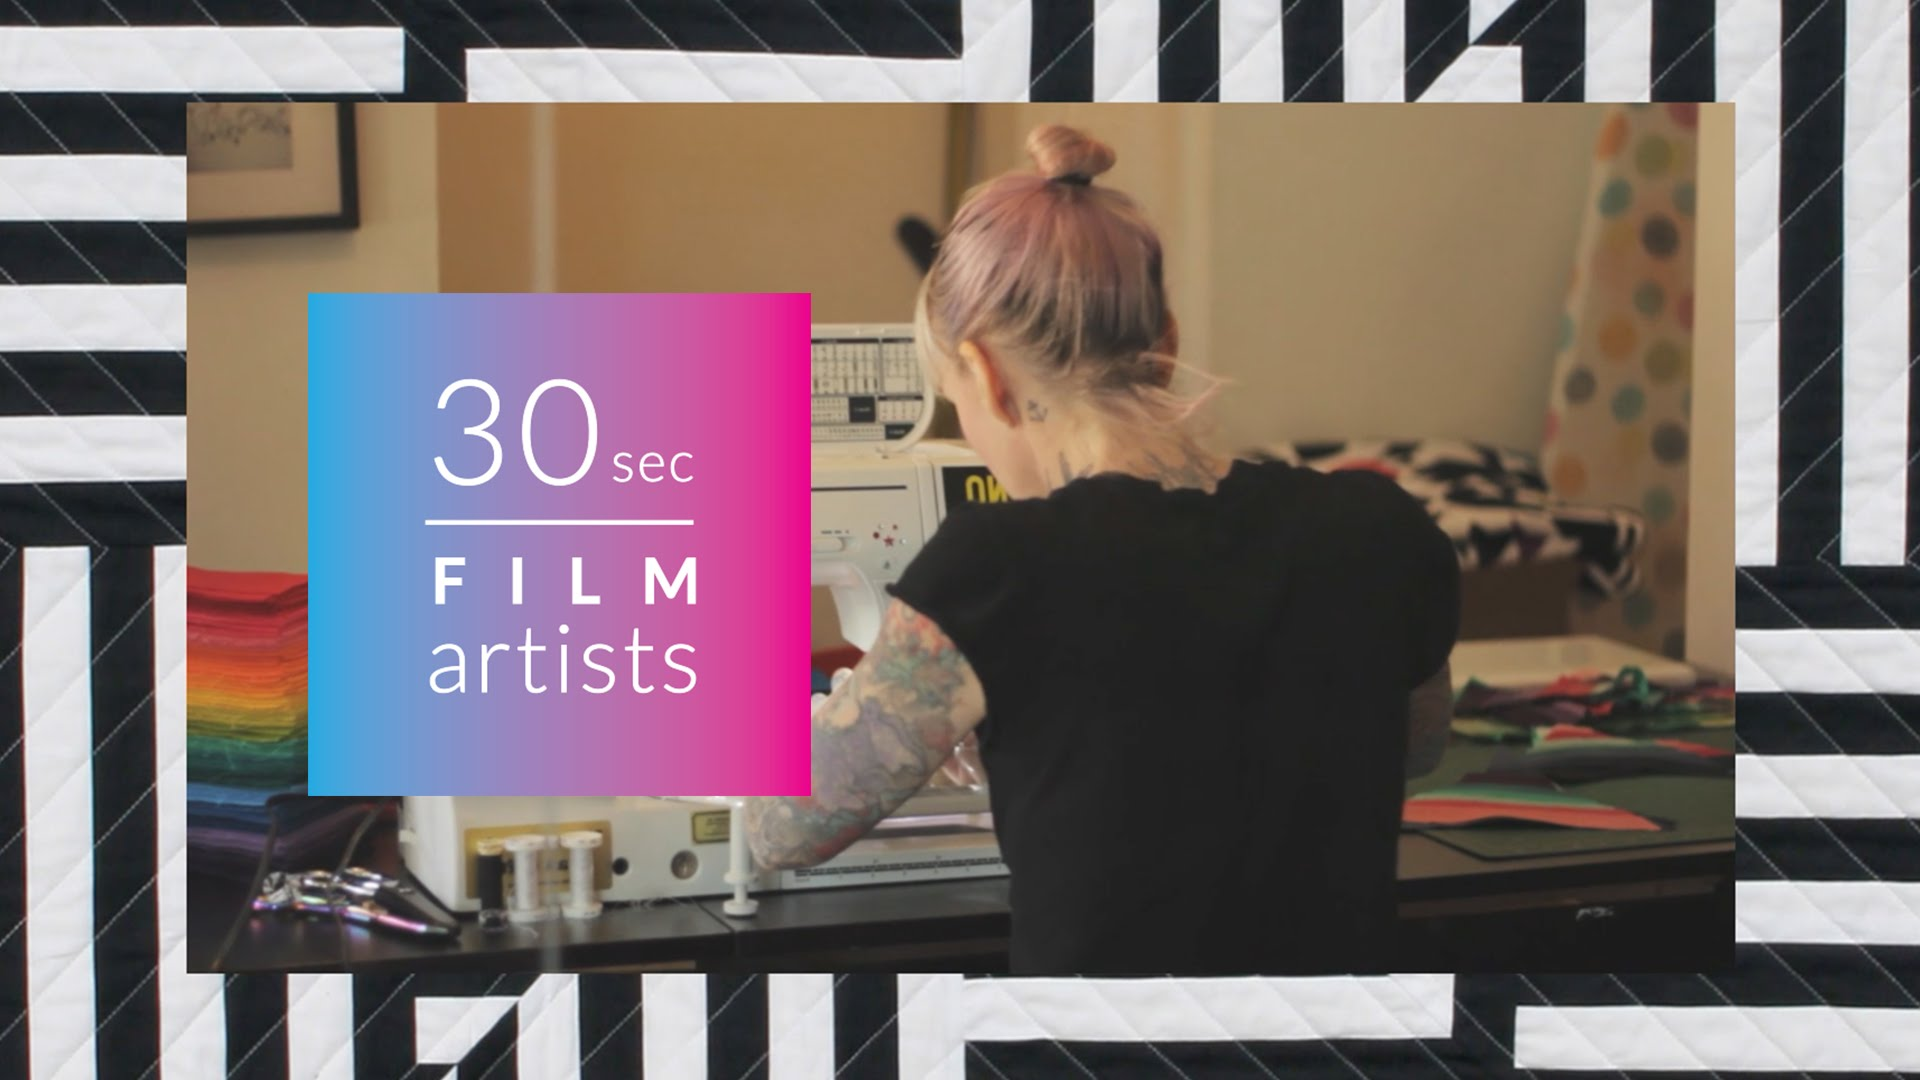 30sec film artists Vol.28 – Elizabeth Elliott